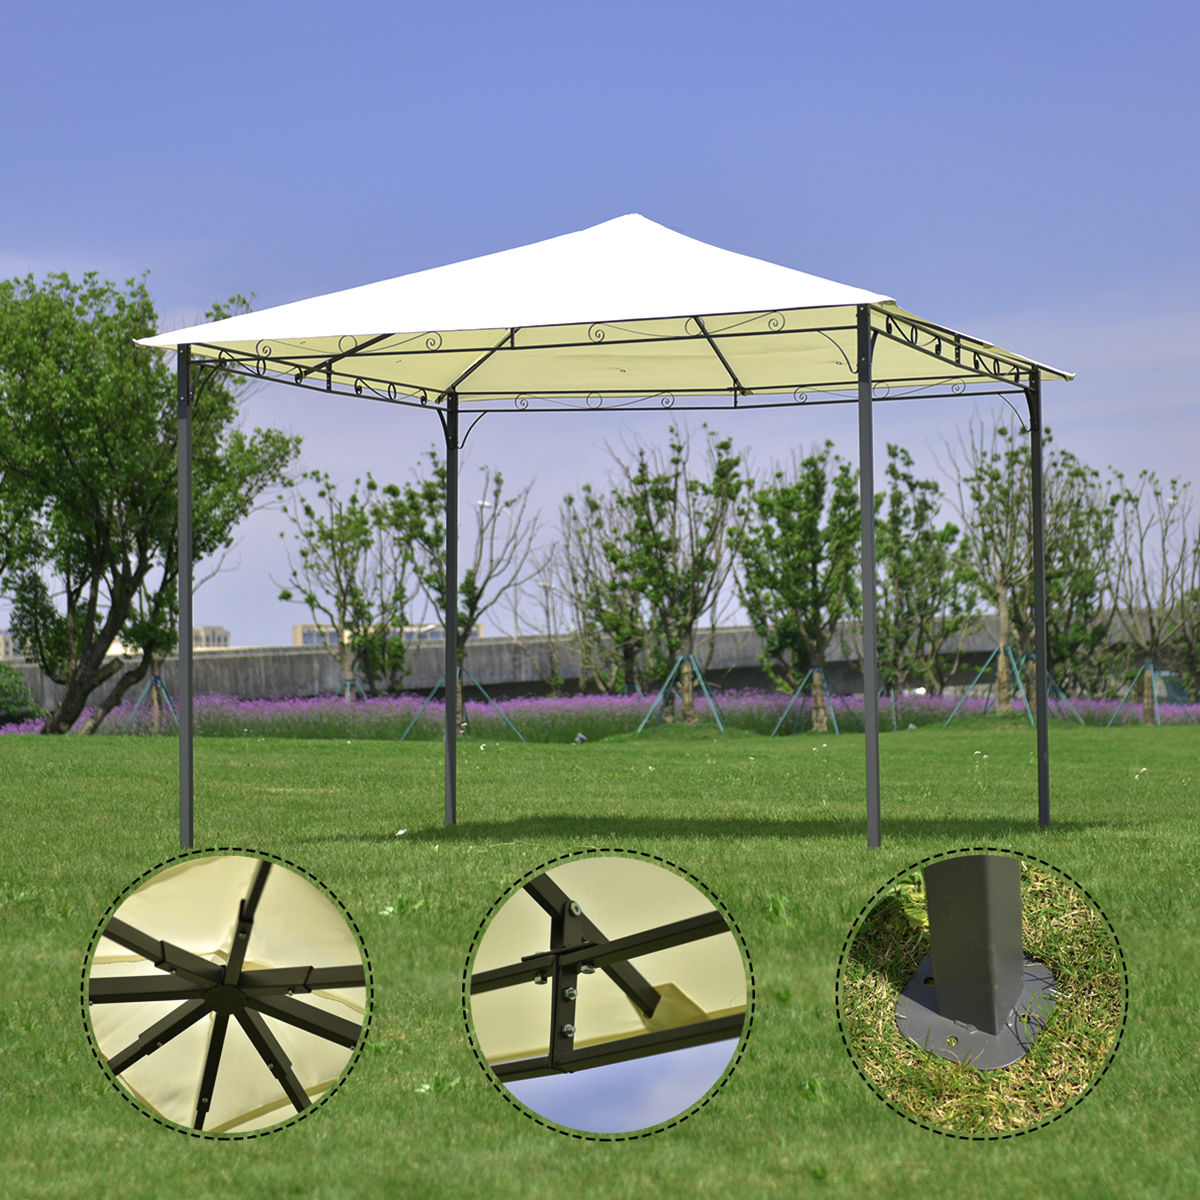 Costway Outdoor 10'x10' Square Gazebo Canopy Tent Shelter Awning Garden Patio beige by Costway